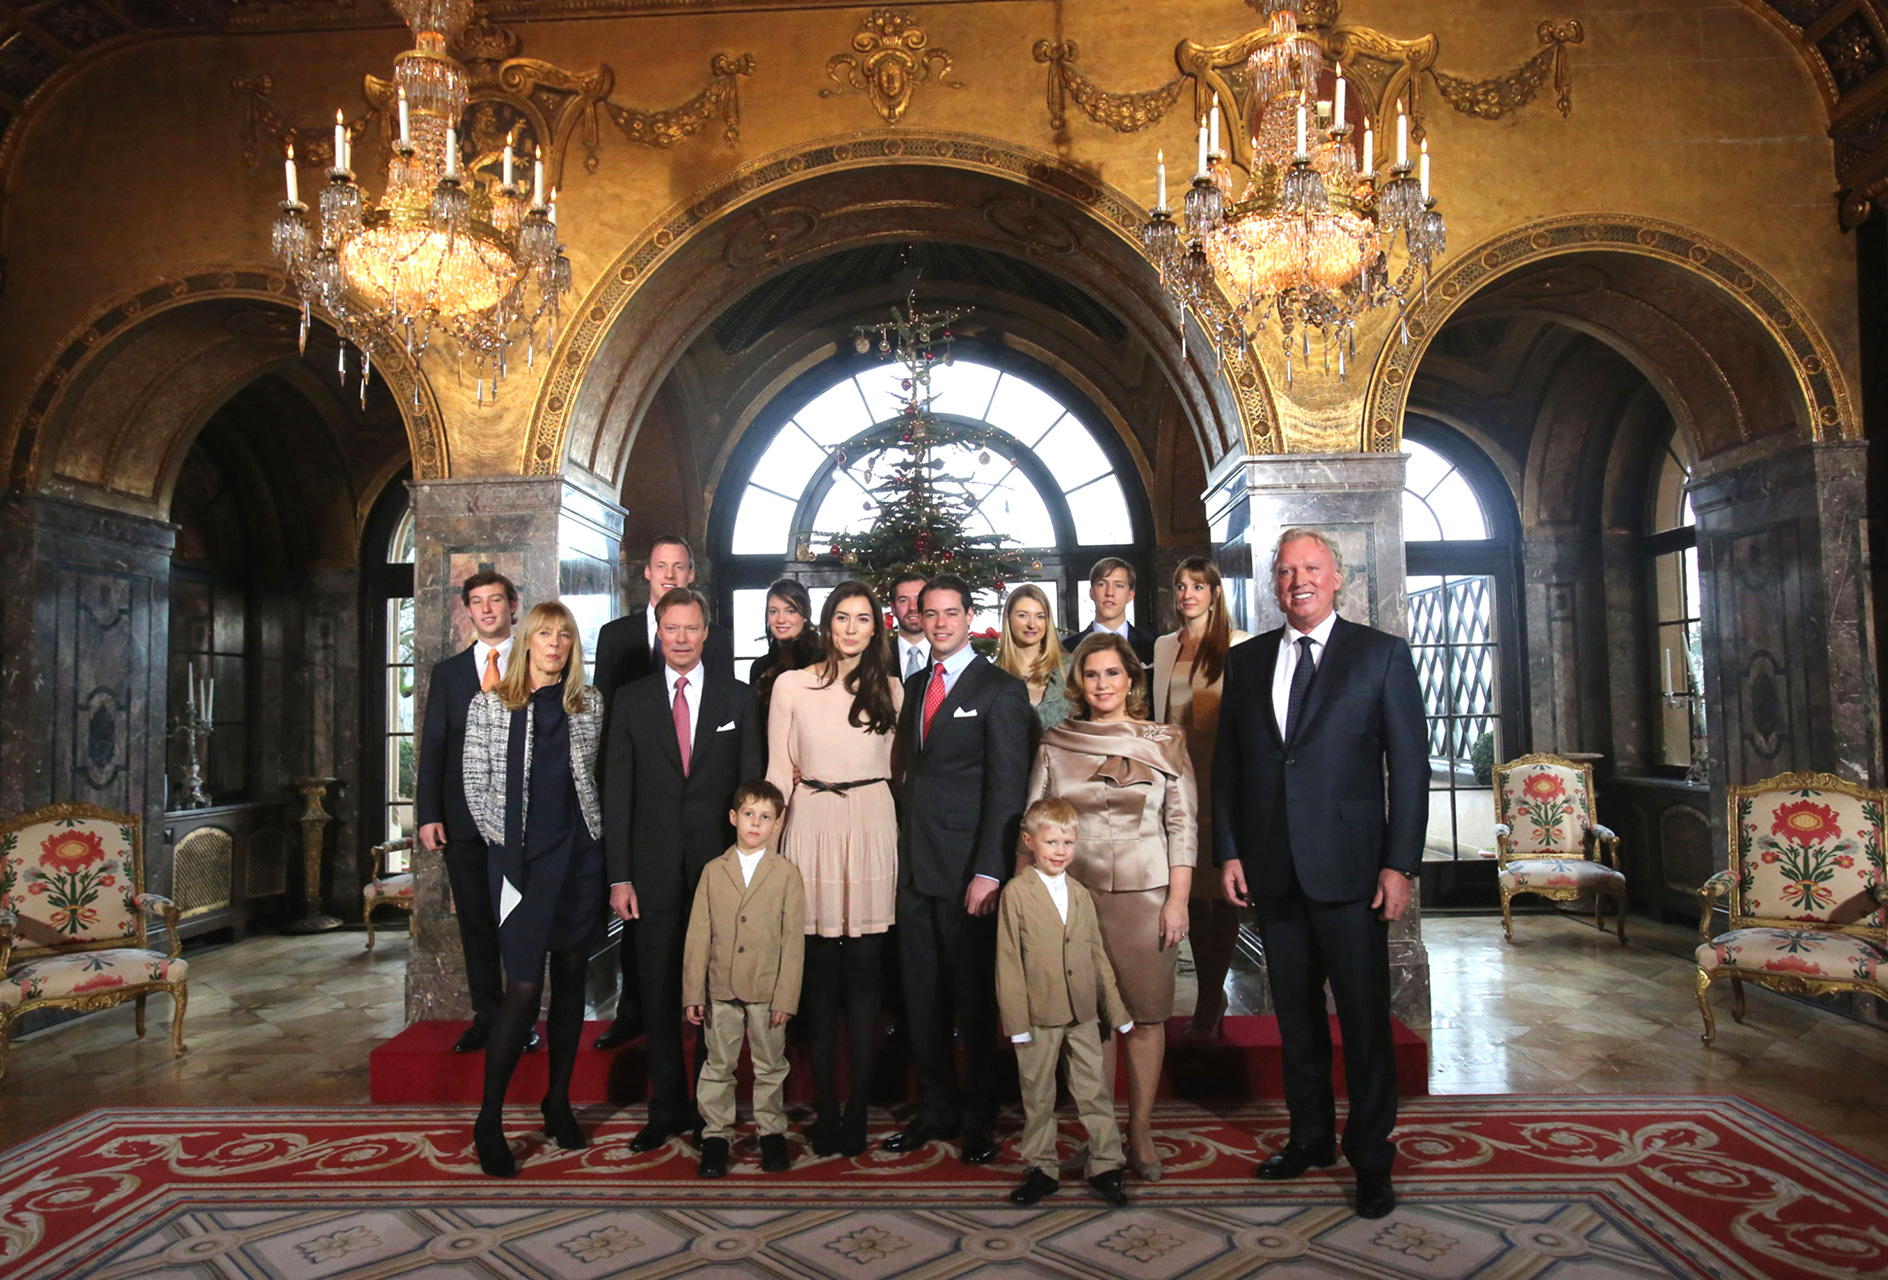 Grand Ducal Family of Luxembourg Pose at Holiday Tree